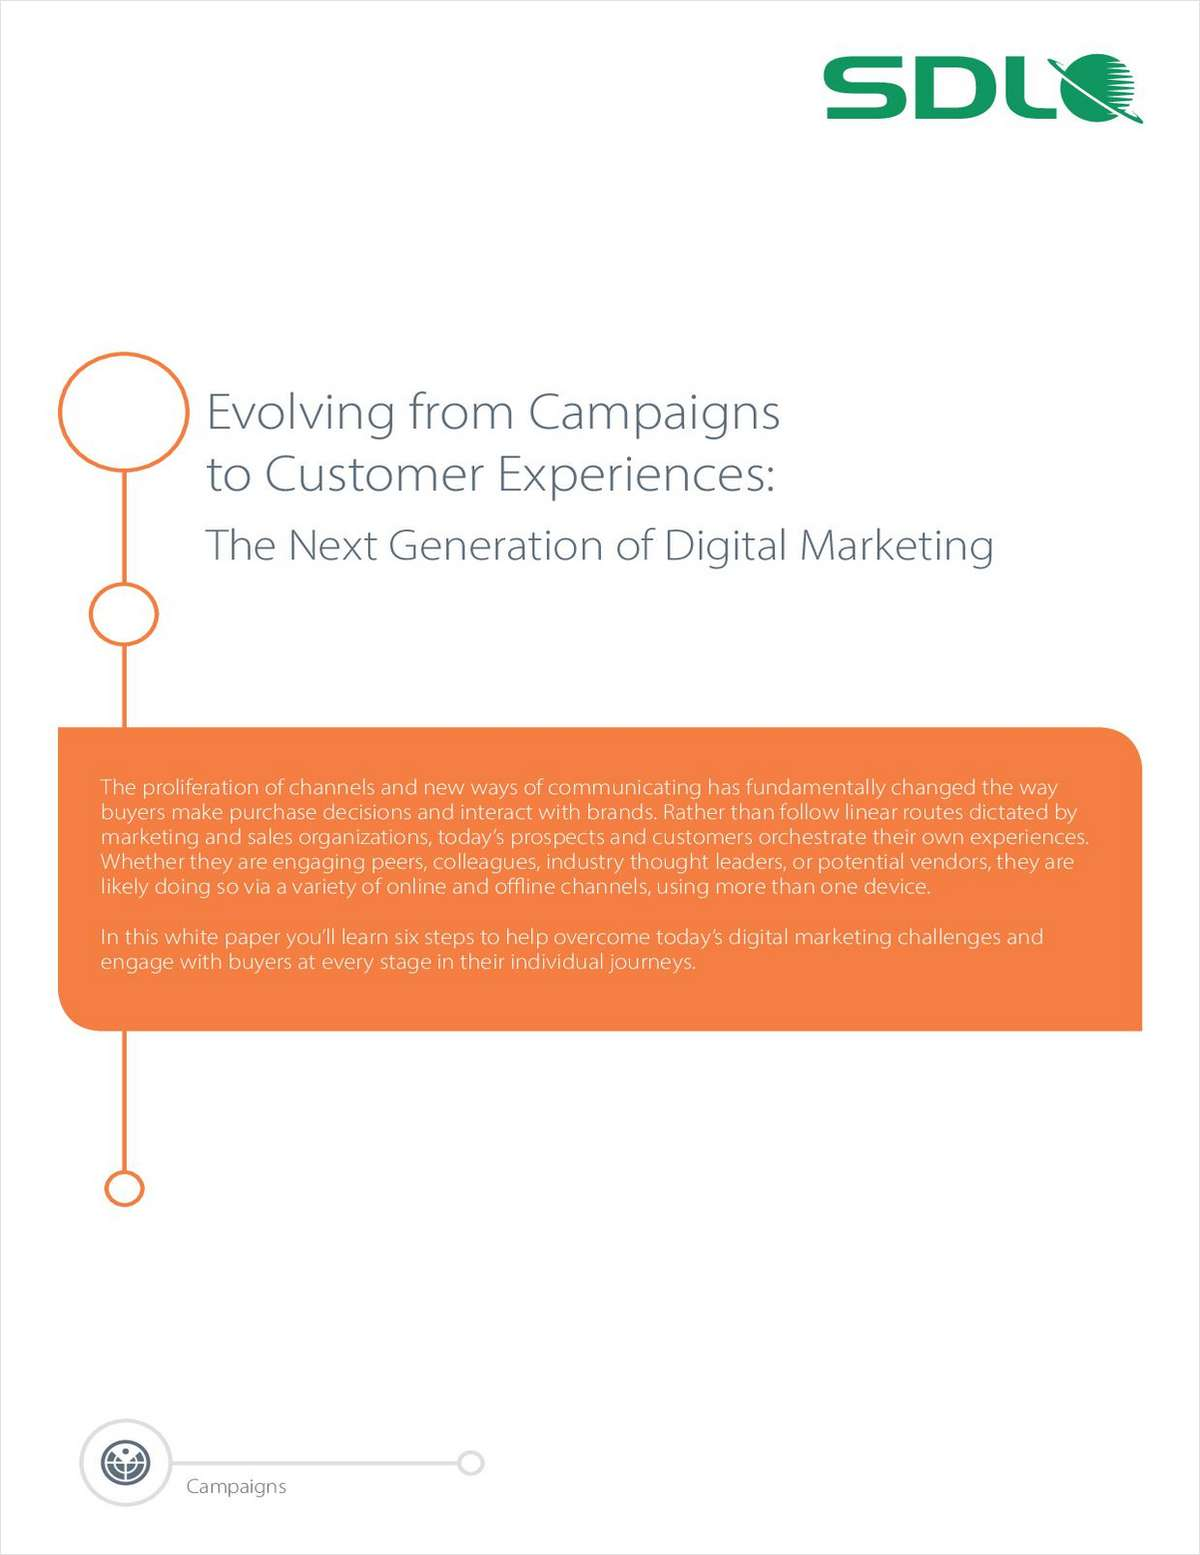 Evolving From Campaigns to Customer Experiences: The Next Generation of Digital Marketing